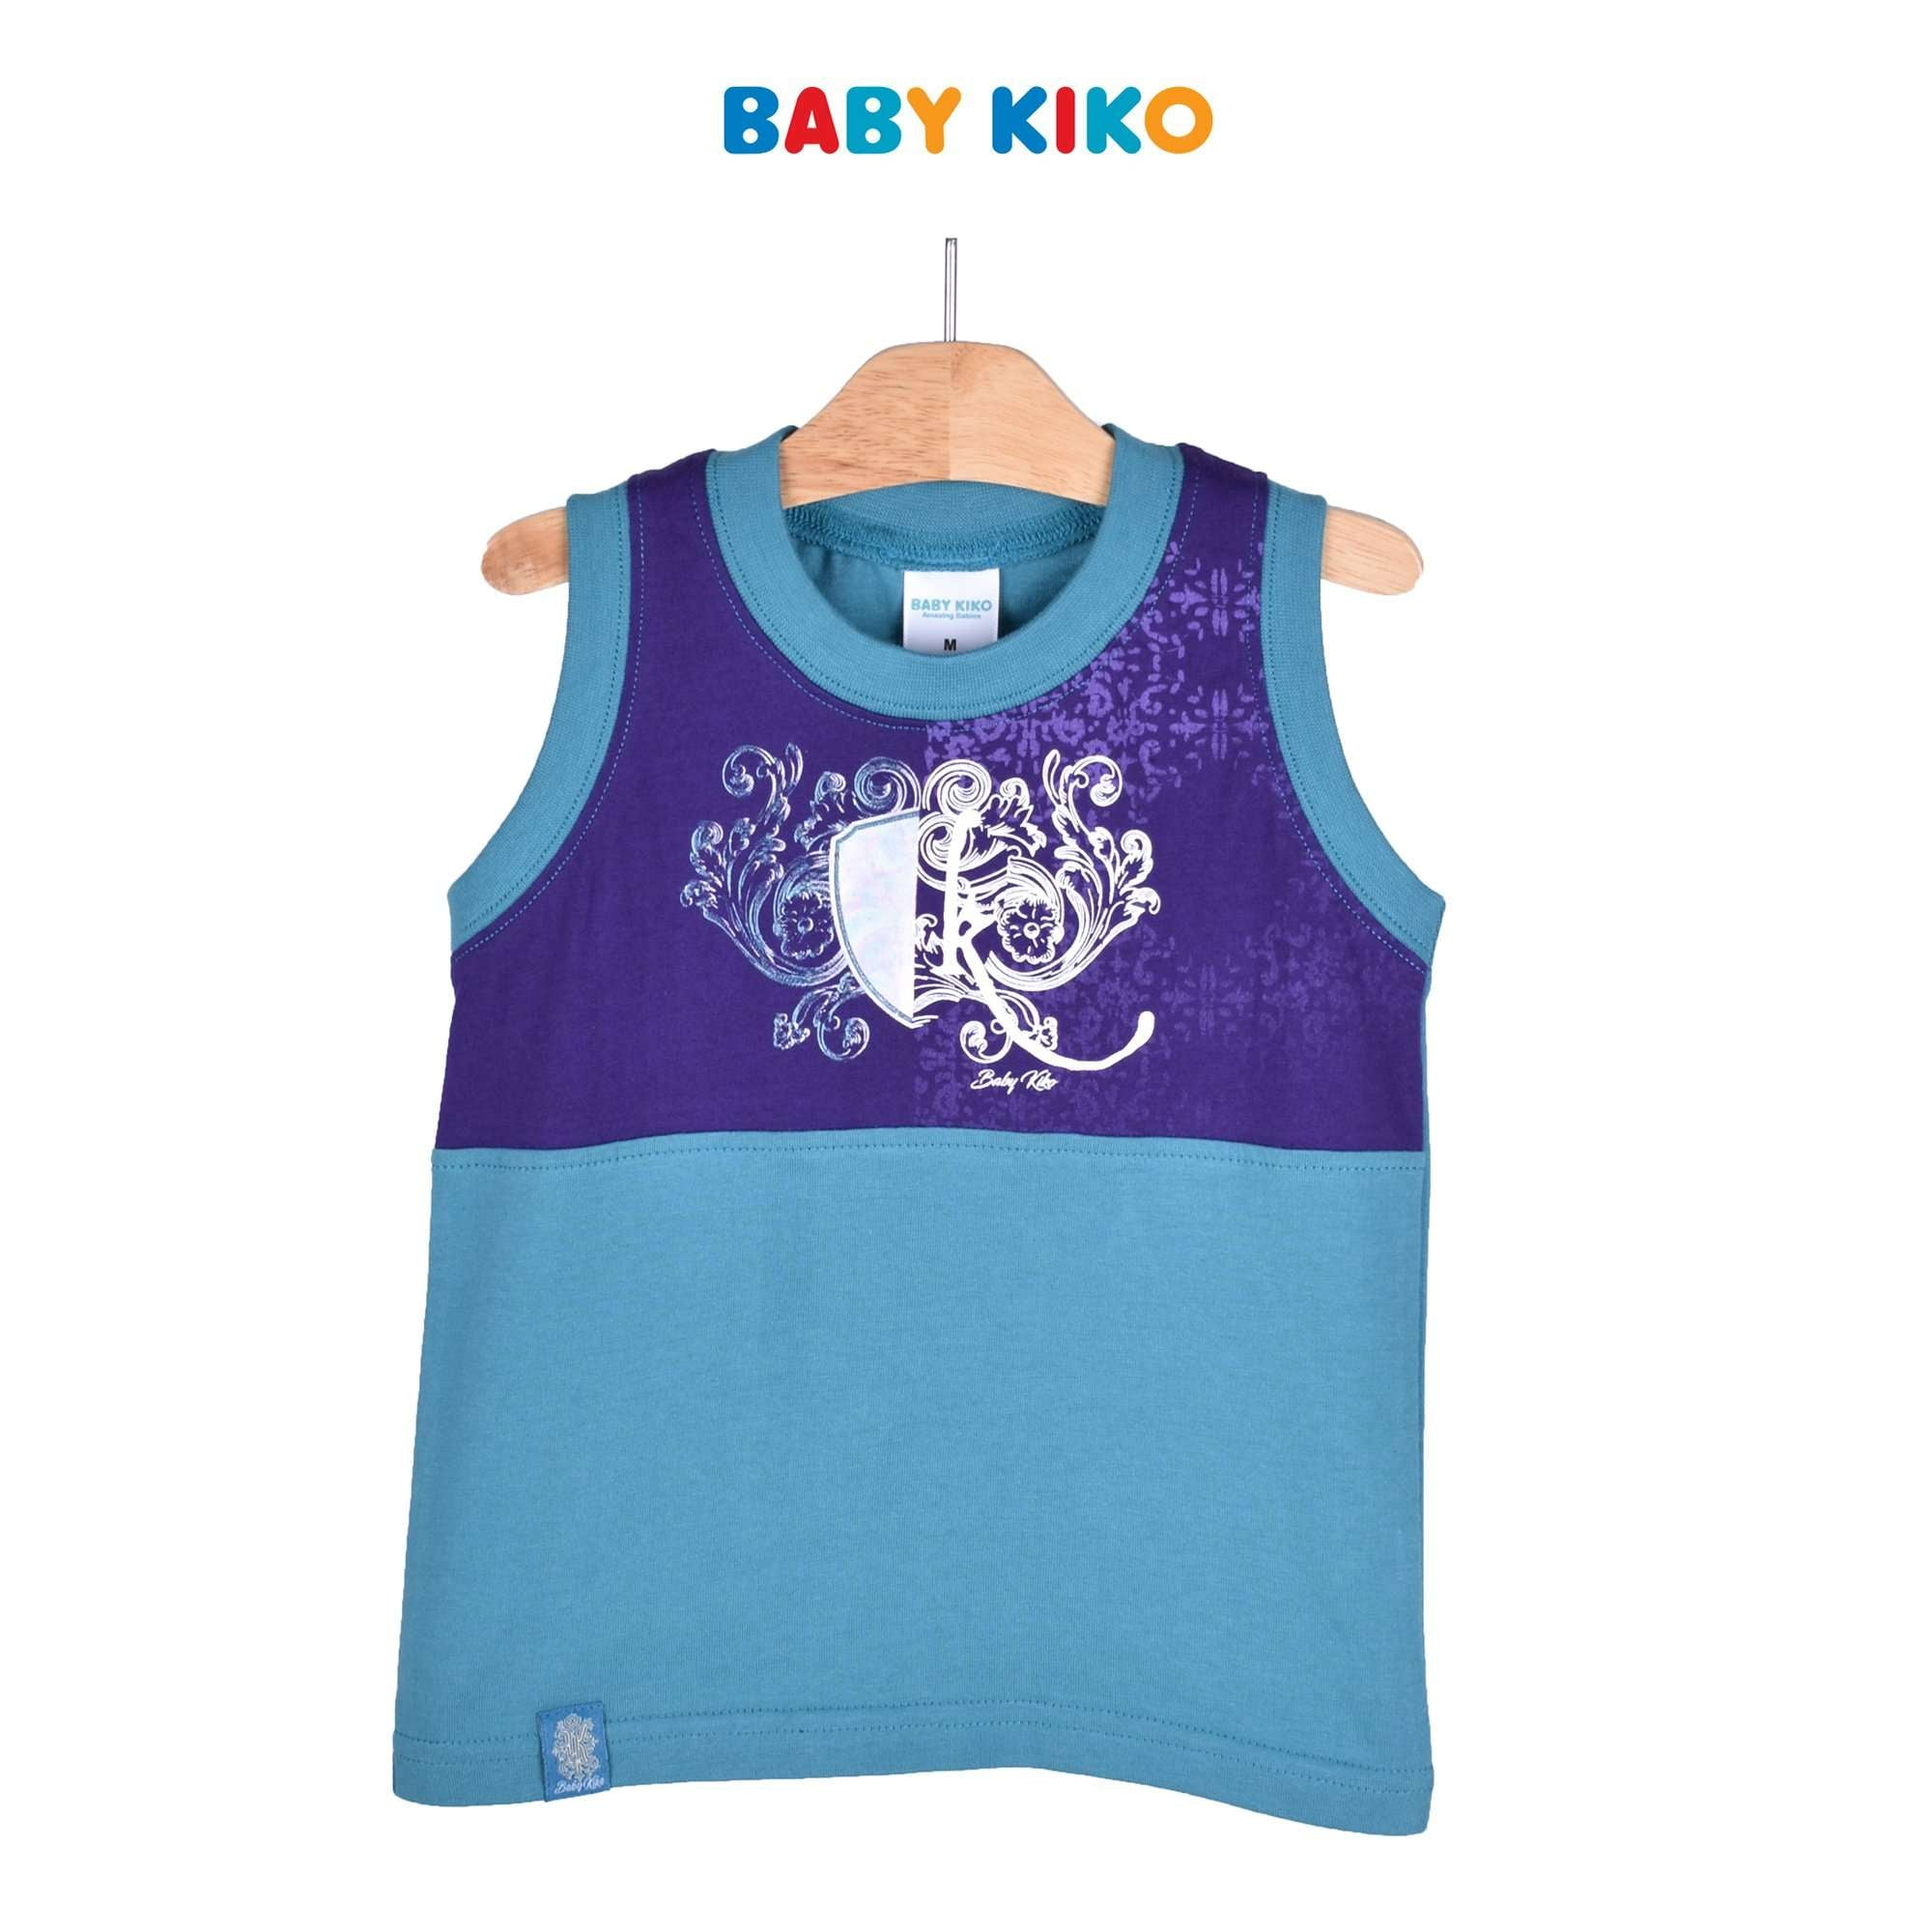 Baby KIKO Toddler Boy Sleeveless Tee 335116-101 : Buy Baby KIKO online at CMG.MY